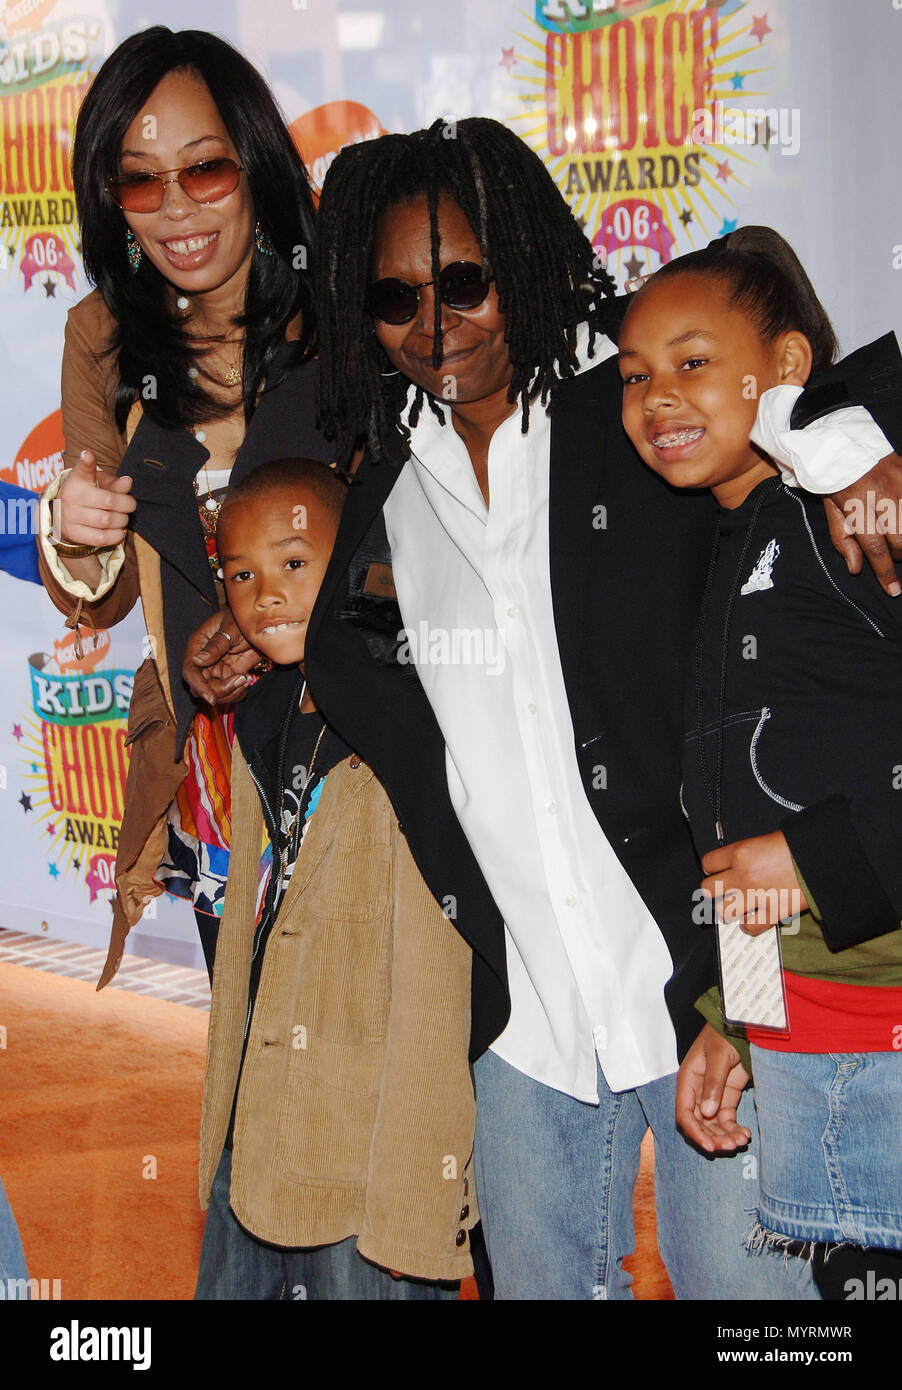 Whoopi Goldberg with daughter and her grand kids arriving at the Nickel Odeon Kid's Choice Awards at the Pauley Pavillon at UCLA in Los Angeles. April 1, 2006.14_GoldbergWhoopi_daugh_grD  Event in Hollywood Life - California, Red Carpet Event, USA, Film Industry, Celebrities, Photography, Bestof, Arts Culture and Entertainment, Celebrities fashion, Best of, Hollywood Life, Event in Hollywood Life - California, Red Carpet and backstage, Music celebrities, Topix, Couple, family ( husband and wife ) and kids- Children, brothers and sisters inquiry tsuni@Gamma-USA.com, Credit Tsuni / USA, 2006 to  - Stock Image